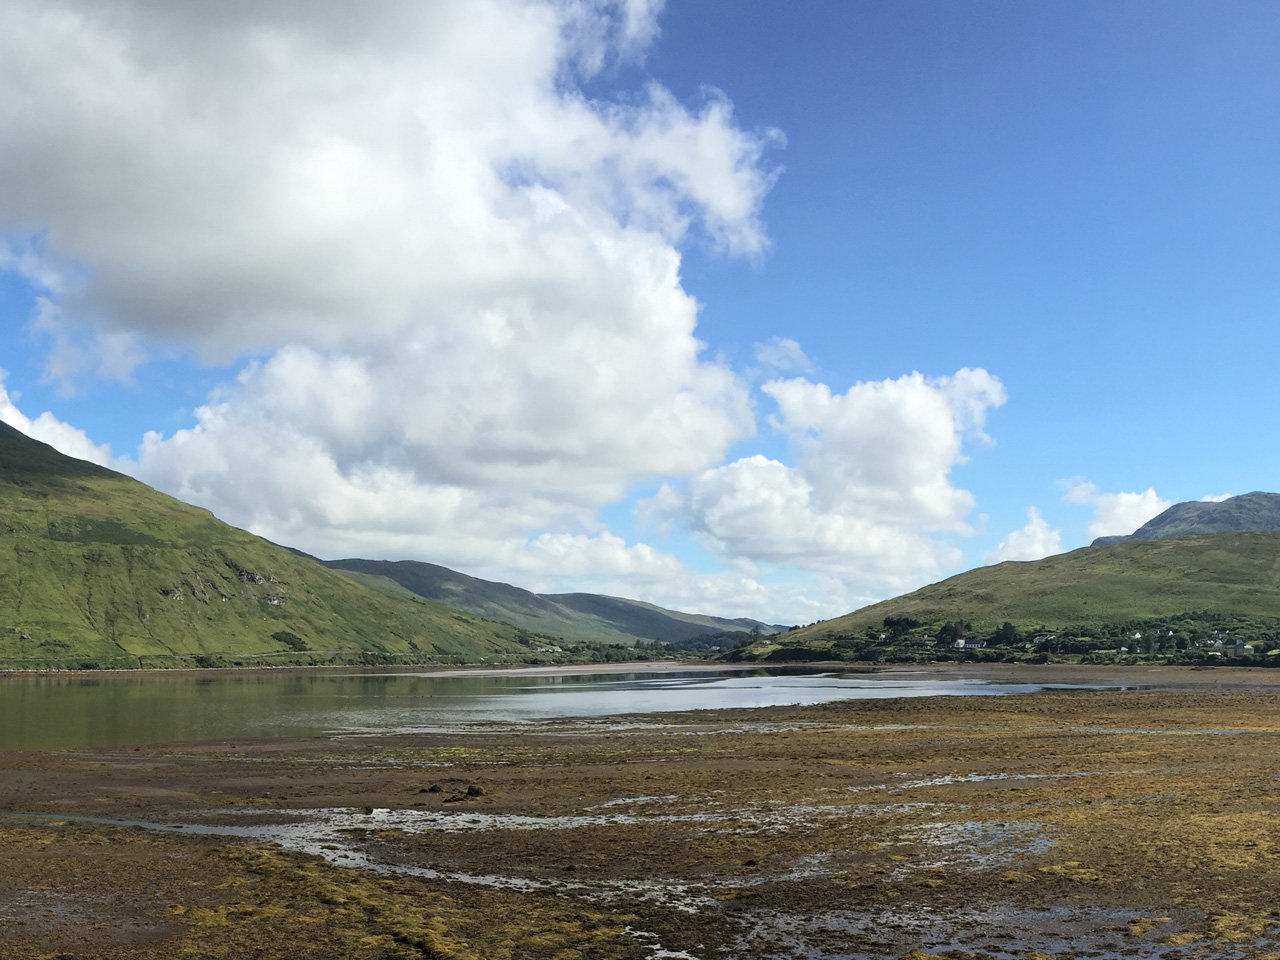 Leenane, Co. Mayo. The tide is out!